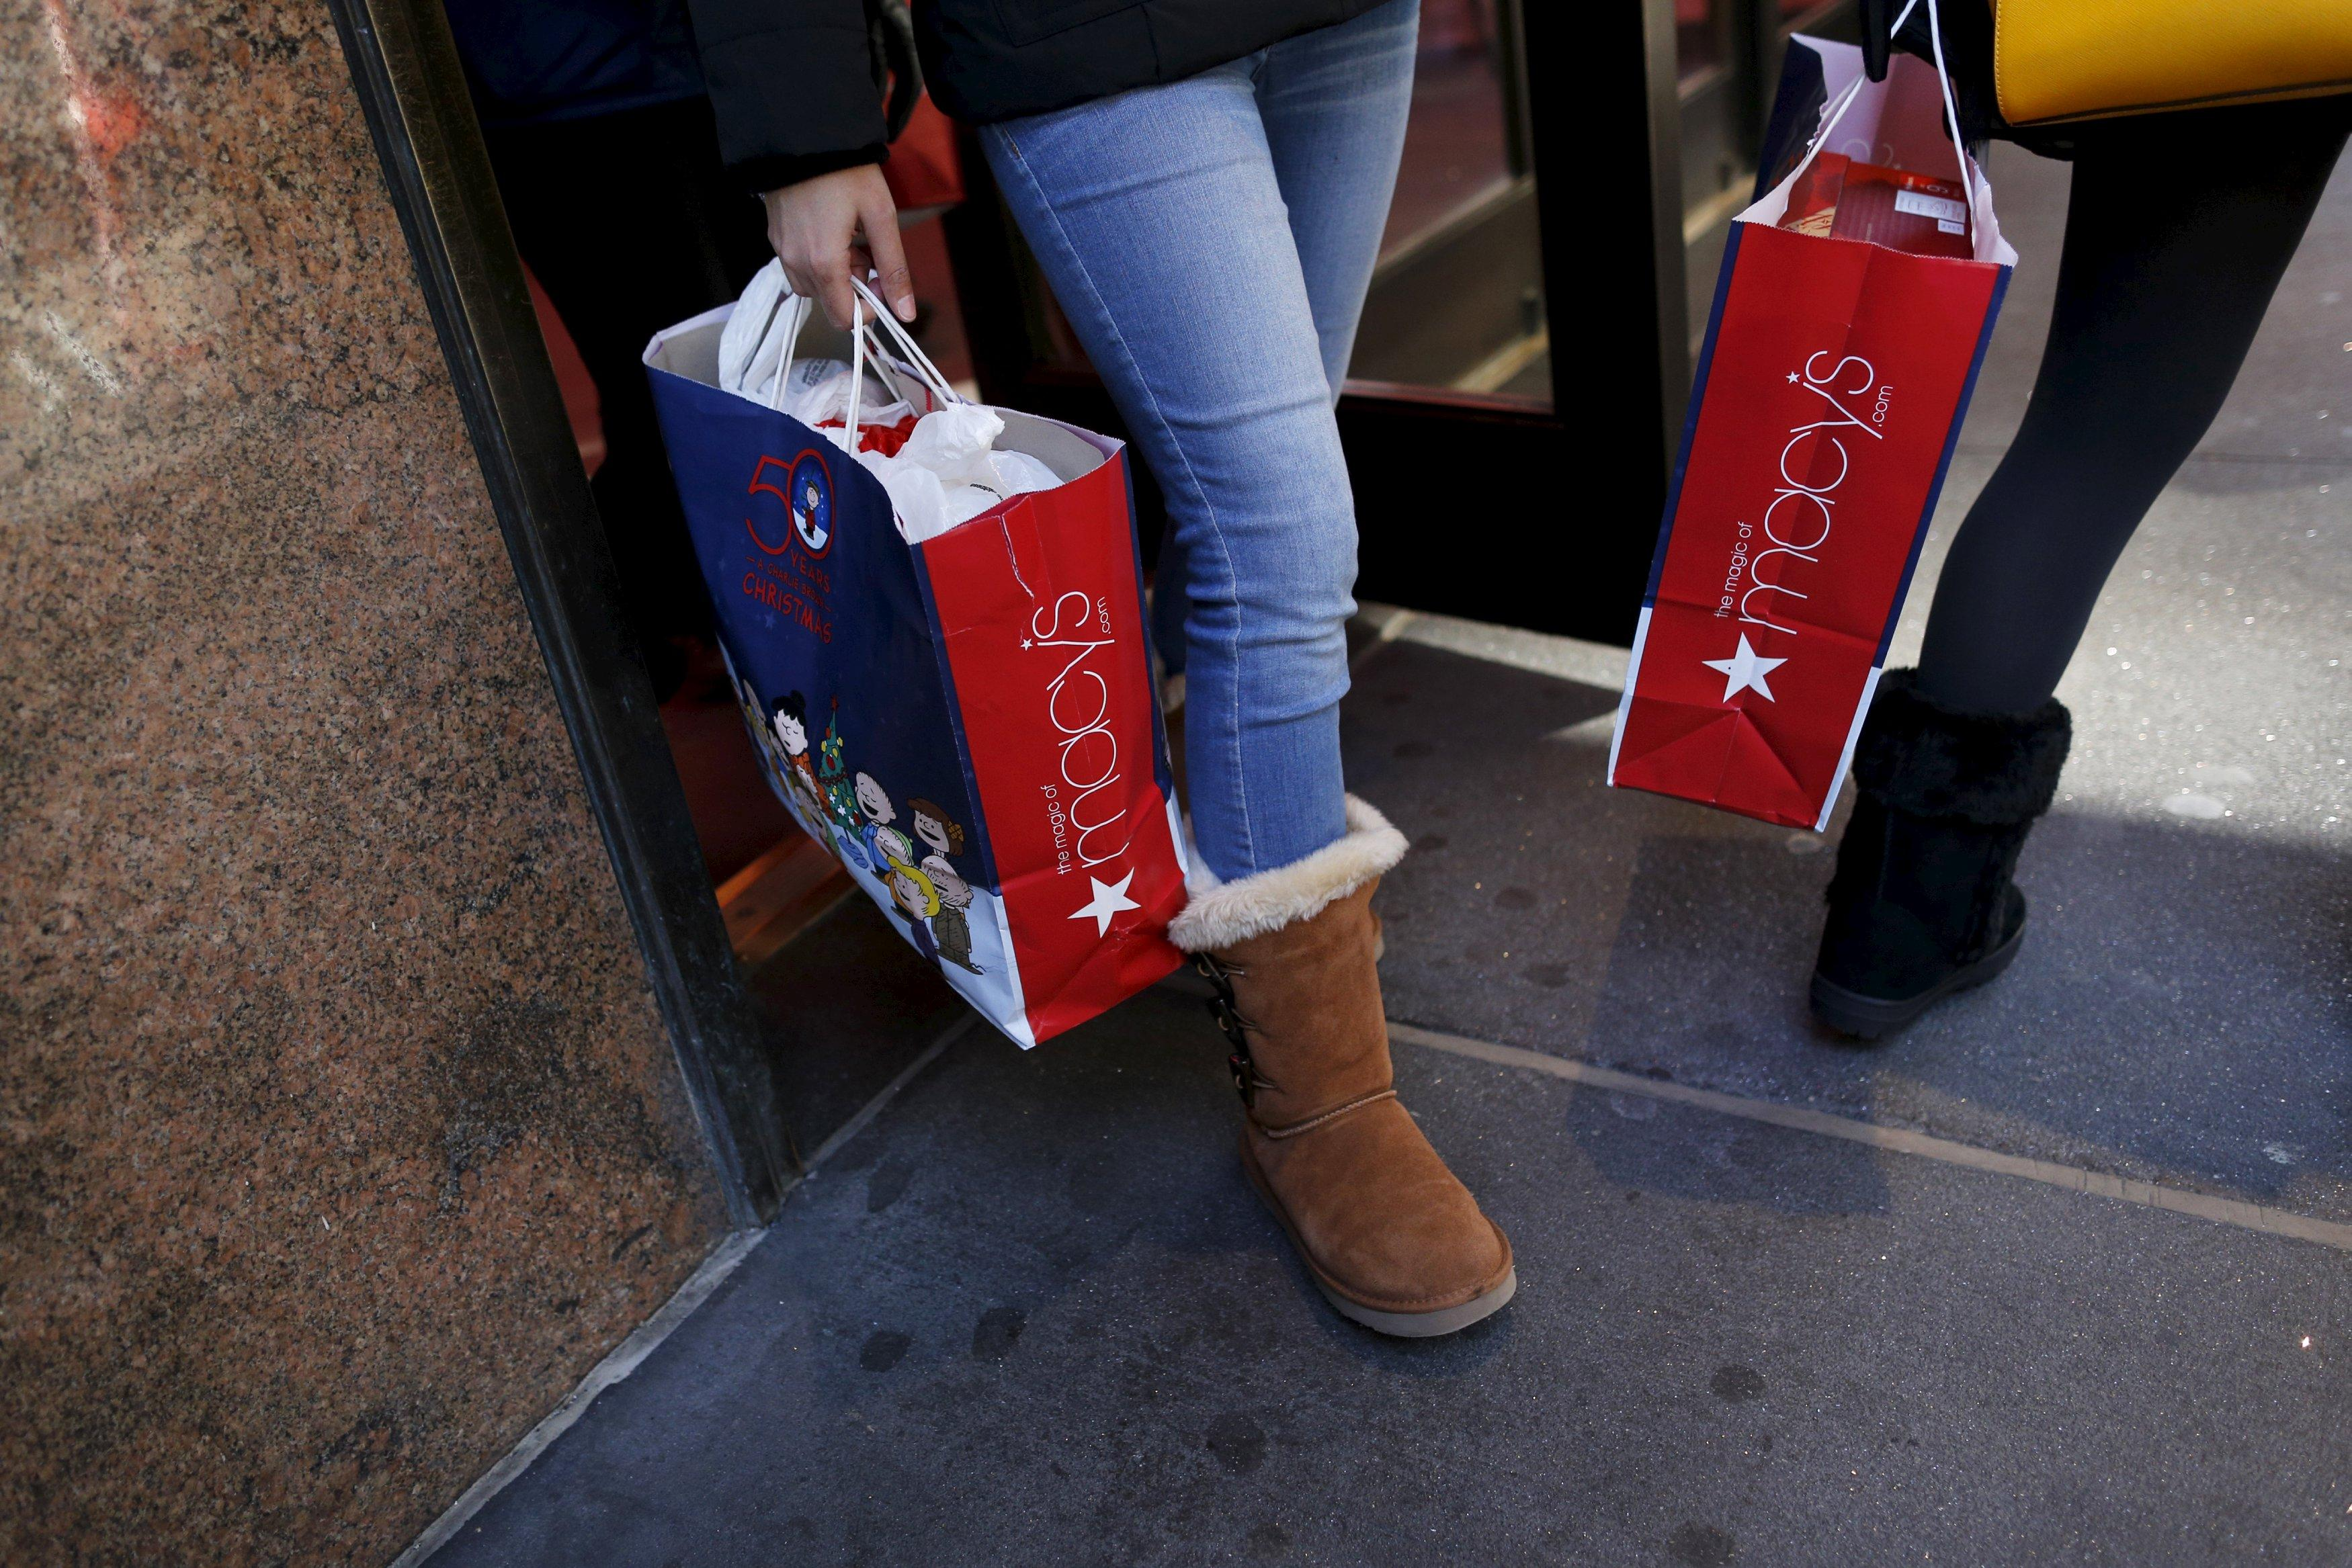 Shoppers exit Macy's on 34th St. in Herald Square in the Manhattan borough of New York